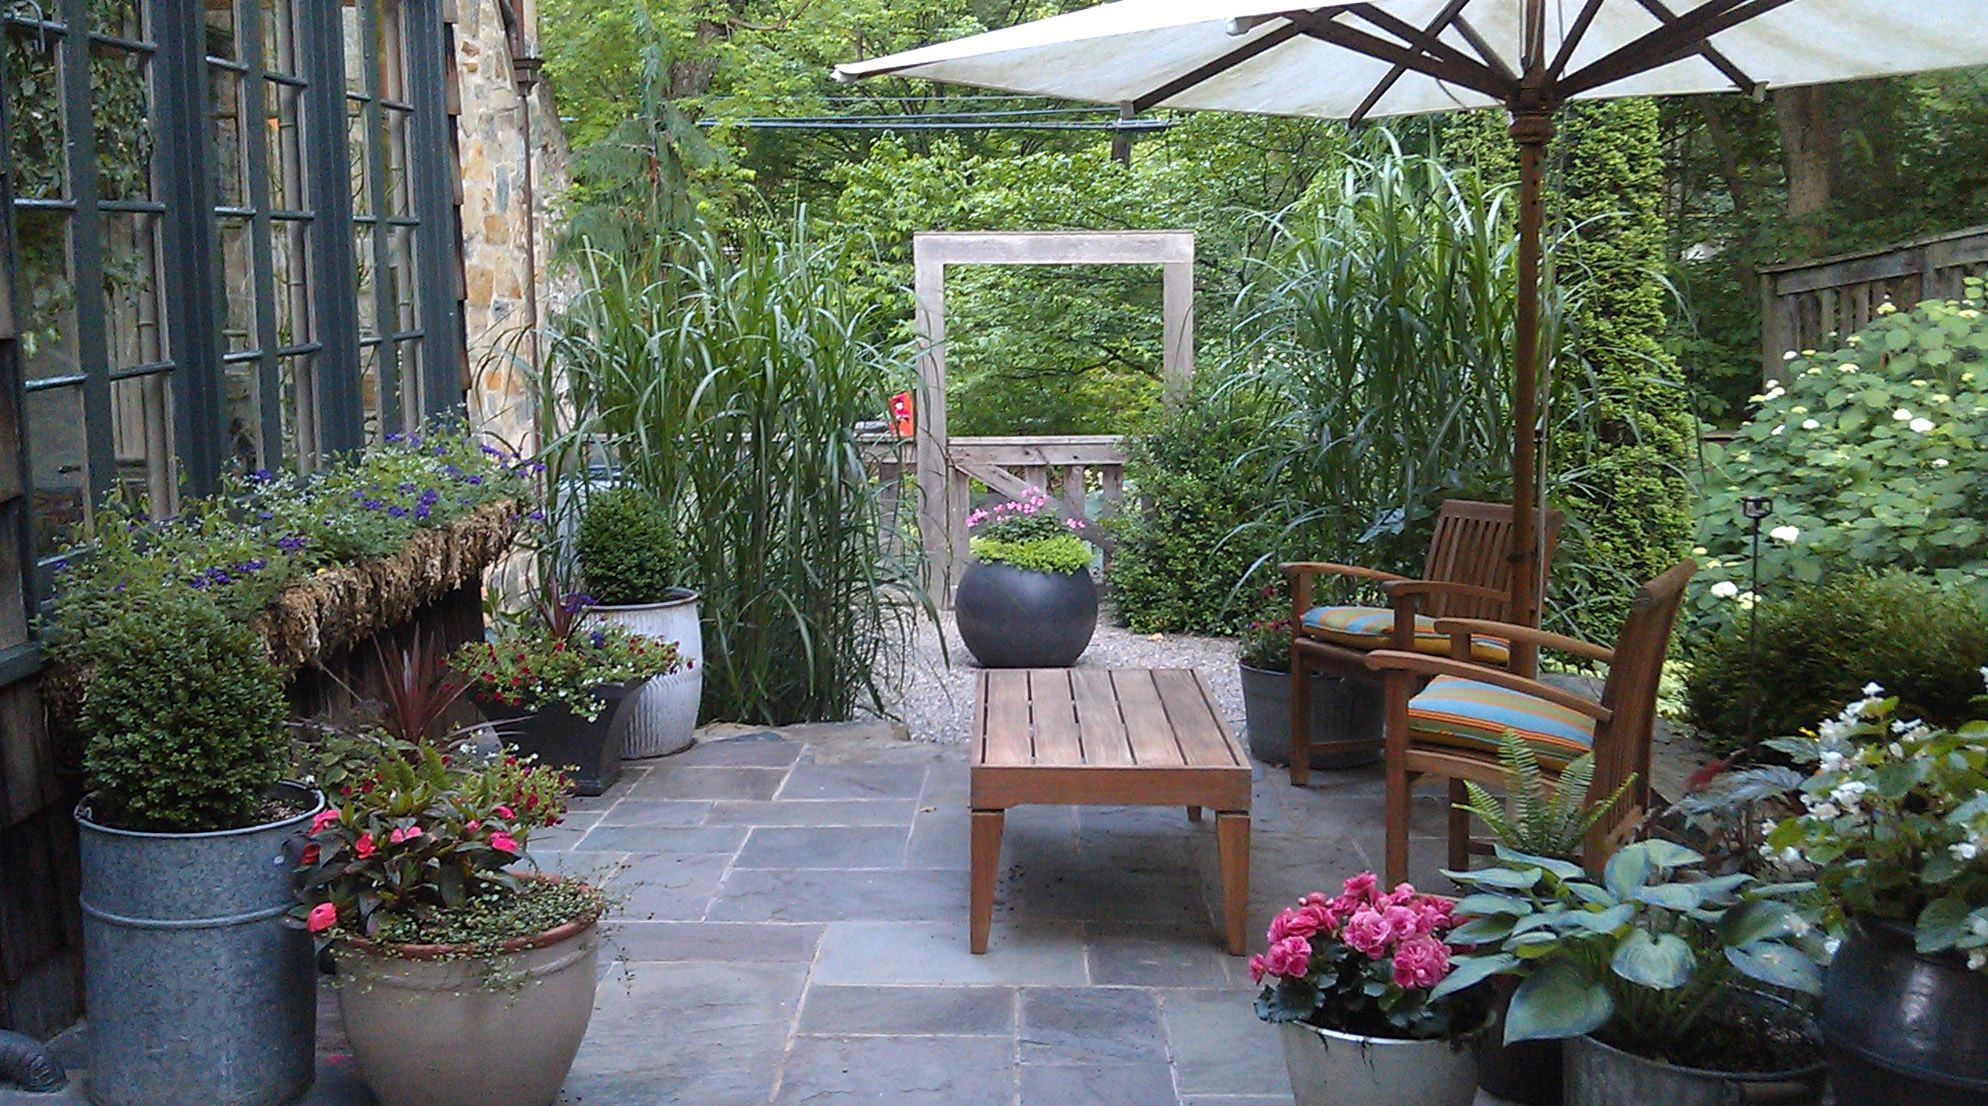 Great space at a garden cottage | Garden idea | Pinterest | Garden on cottage decorating ideas, cottage style backyards, rose cottage garden ideas, fairy cottage garden ideas, cottage flower garden ideas, cottage design ideas, small front yard landscaping ideas, cottage garden ideas houses, cottage kitchen ideas, cottage playhouse plans, southern cottage garden ideas, cottage backyard landscape, cottage vegetable garden ideas, cottage garden garden ideas, cottage living room ideas, cottage backyard patios, cottage backyard greenhouse,